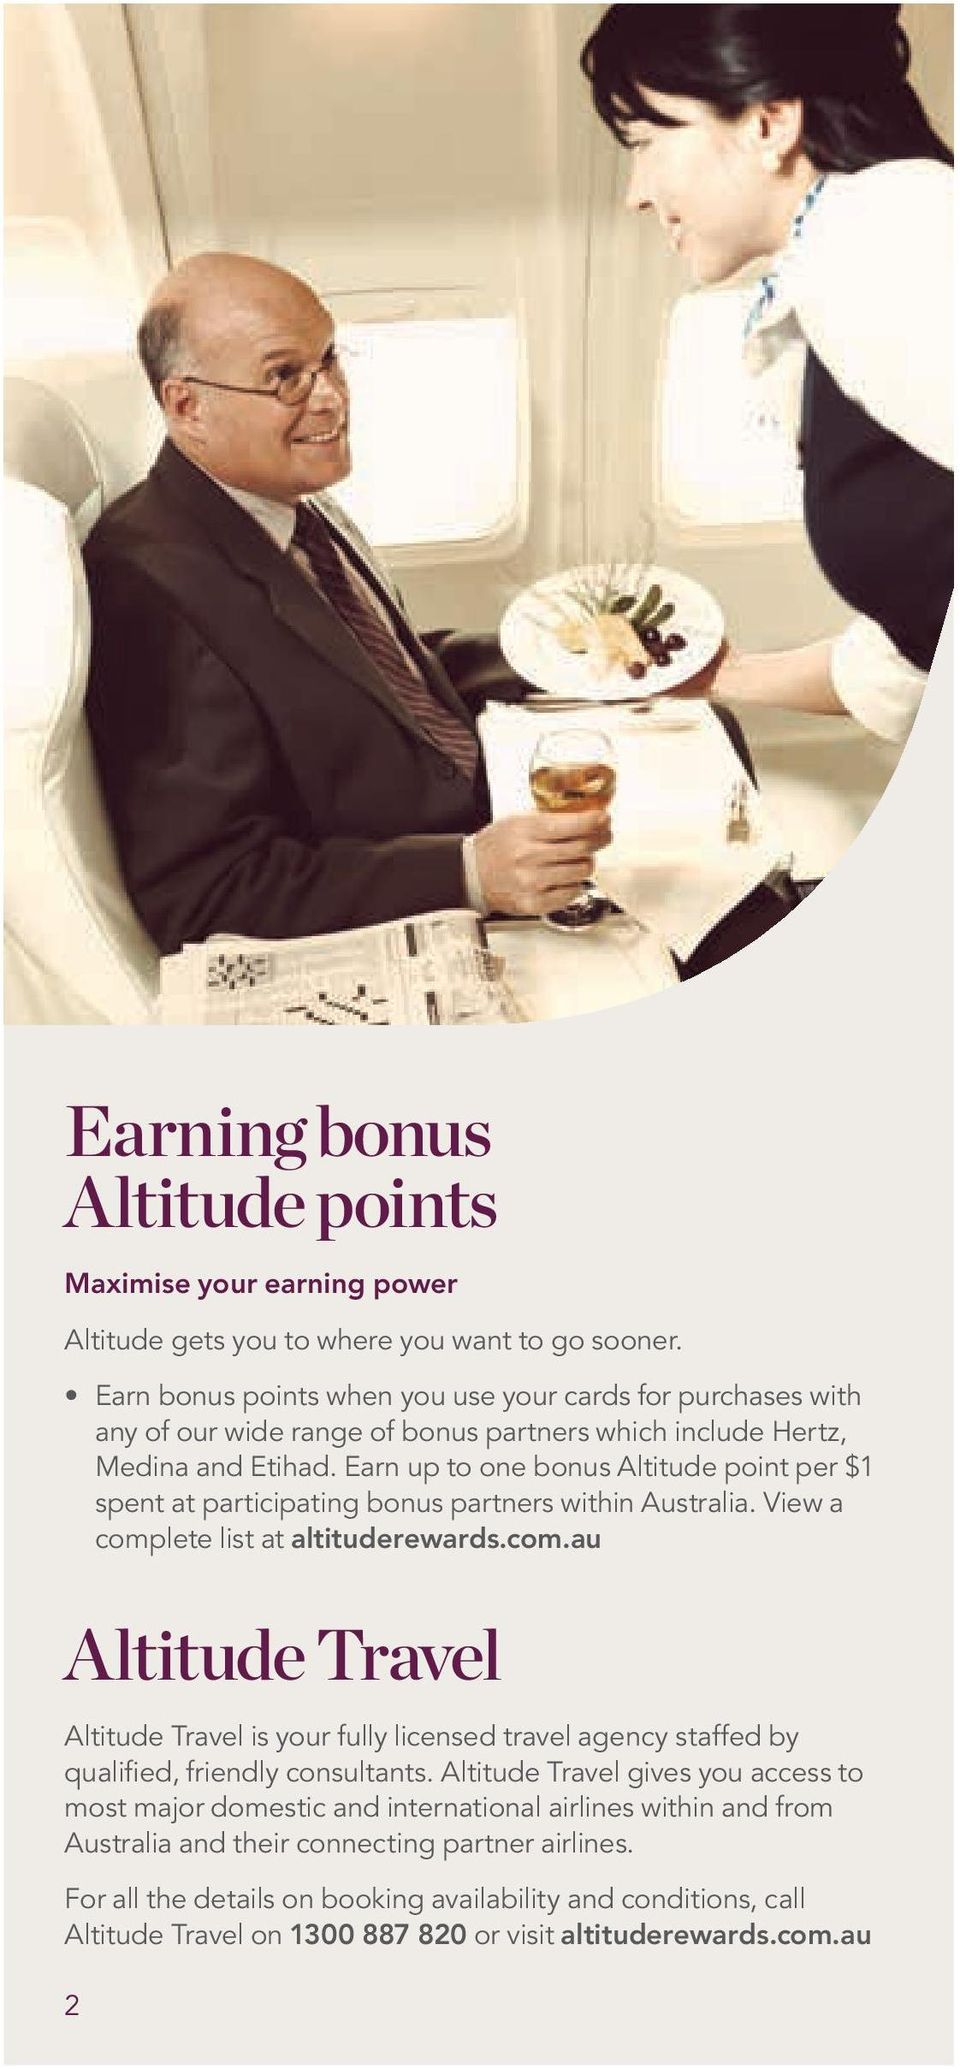 Earn up to one bonus Altitude point per $1 spent at participating bonus partners within Australia. View a comp